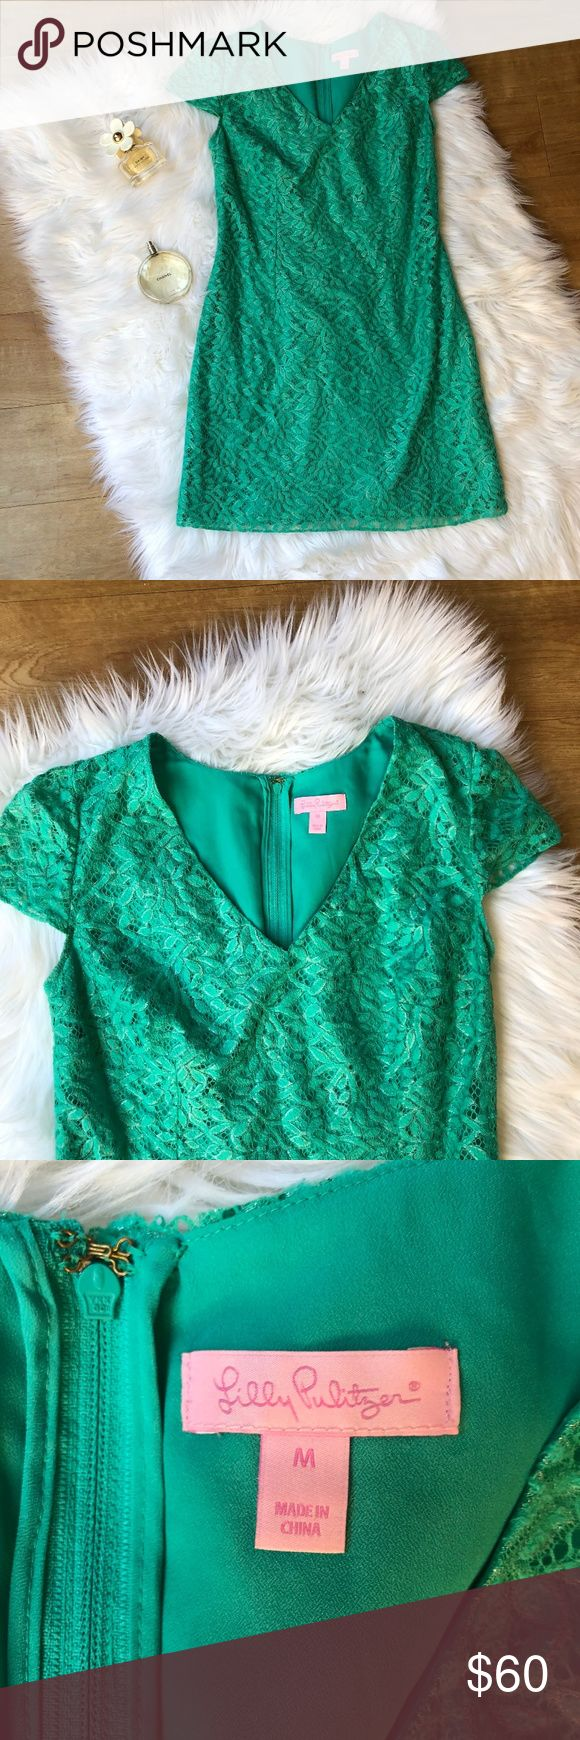 Lilly Pulitzer Teal Metallic Work Dress This Lilly Pulitzer Dress is a size medium and in good condition. It's great for the office or a transition to a cocktail hour. Thank you for looking and feel free to send me an offer or shoot me this in a bundle. Lilly Pulitzer Dresses Mini